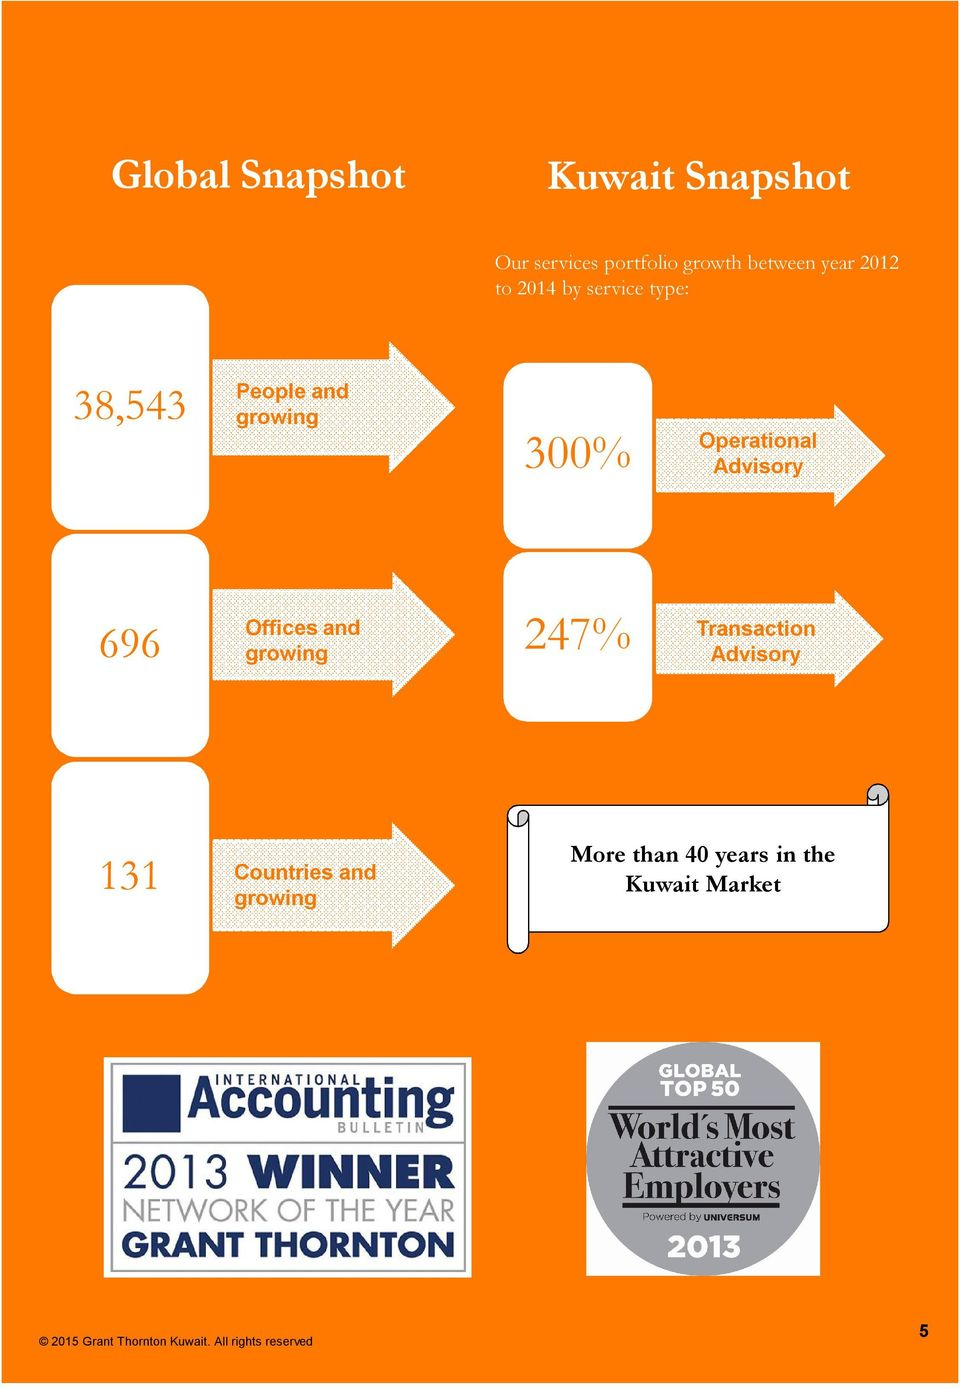 Operational Advisory Risk Management 696 Offices and growing 247%